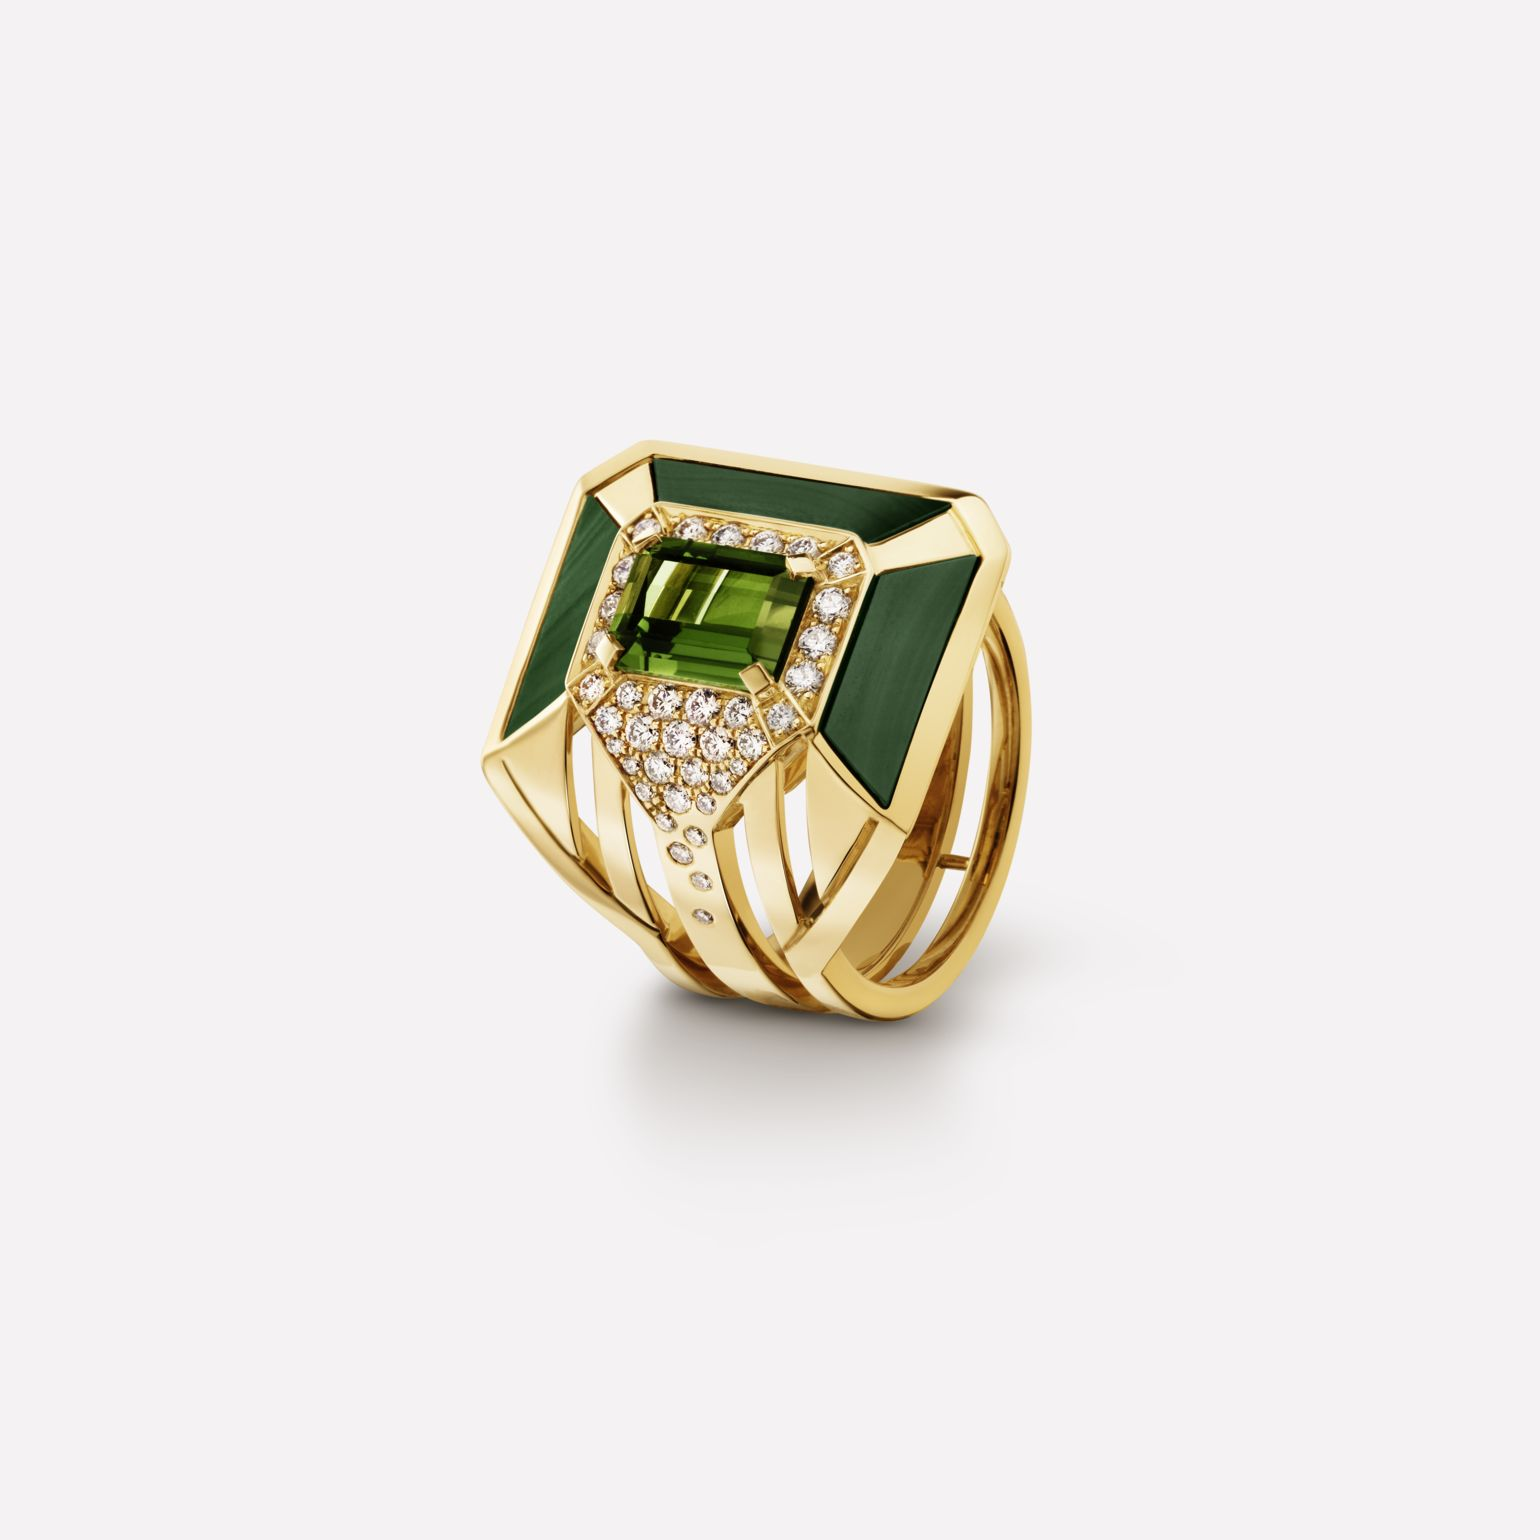 My Green ring 18K yellow gold, malachite, tourmaline and diamonds